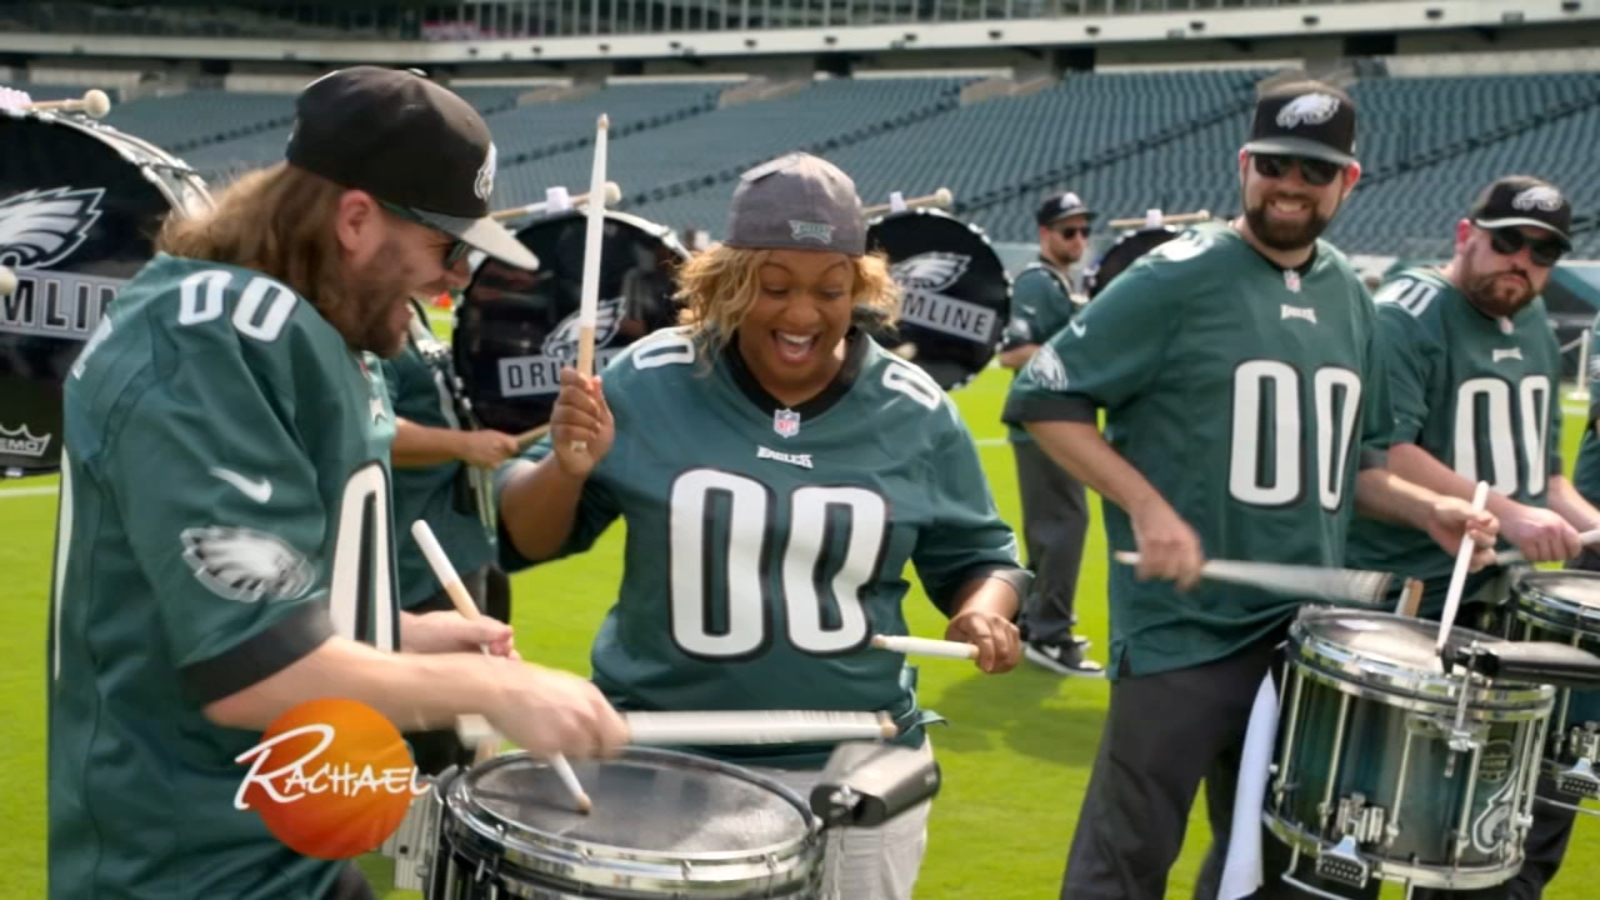 Celebrity chef Sunny Anderson joins Eagles Drumline on 'Rachael Ray' | 6abc.com